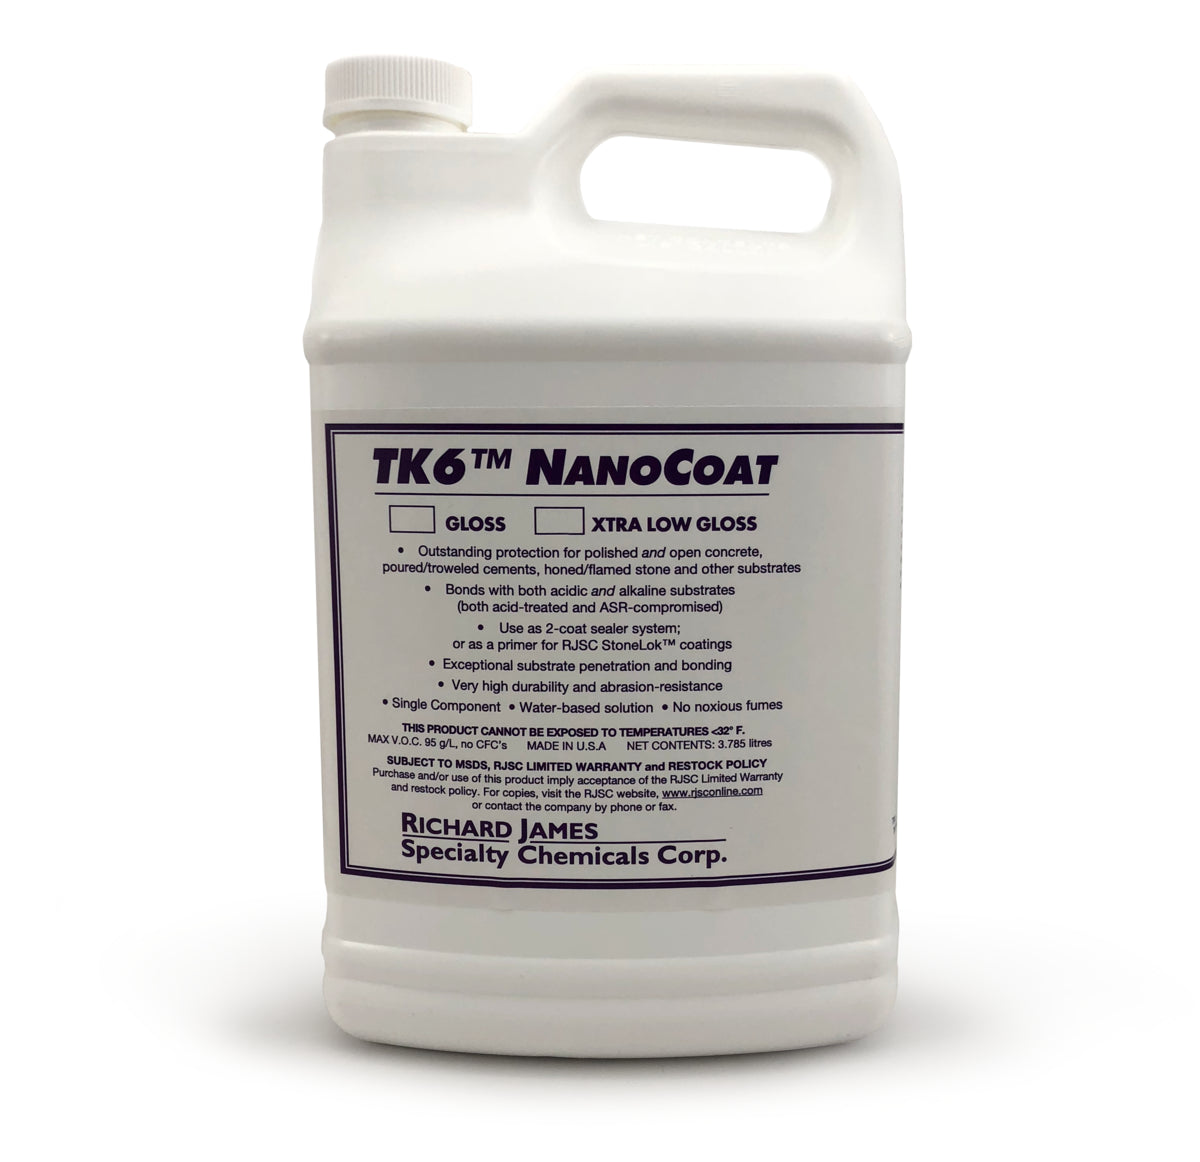 Richard James Specialty Chemical Corp. TK6™ NanoCoat Concrete Sealer